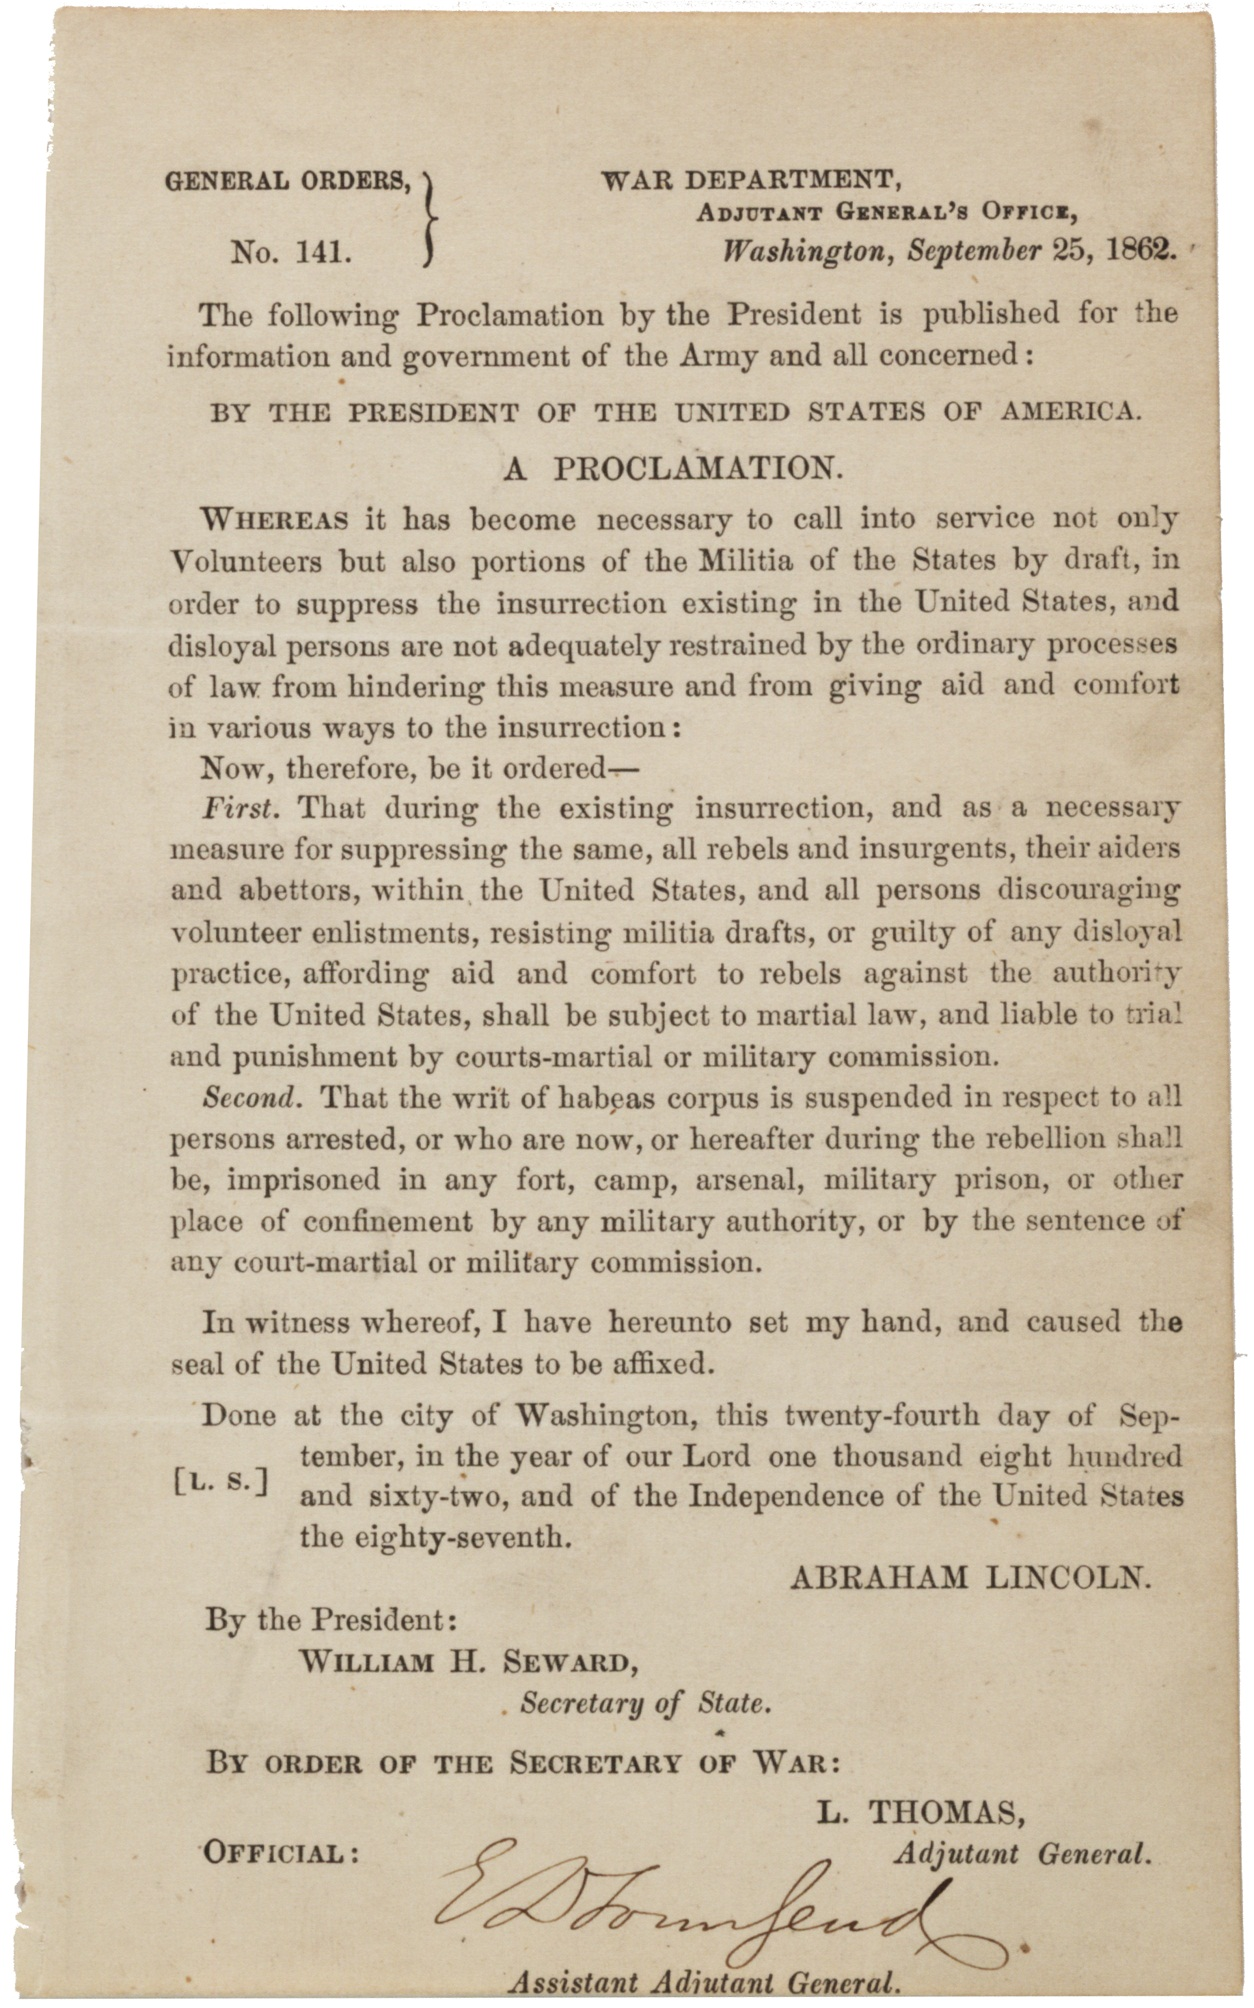 a proclamation on the suspension of habeas corpus 1862 the abraham lincoln general orders no 141 25 1862 gilder lehrman